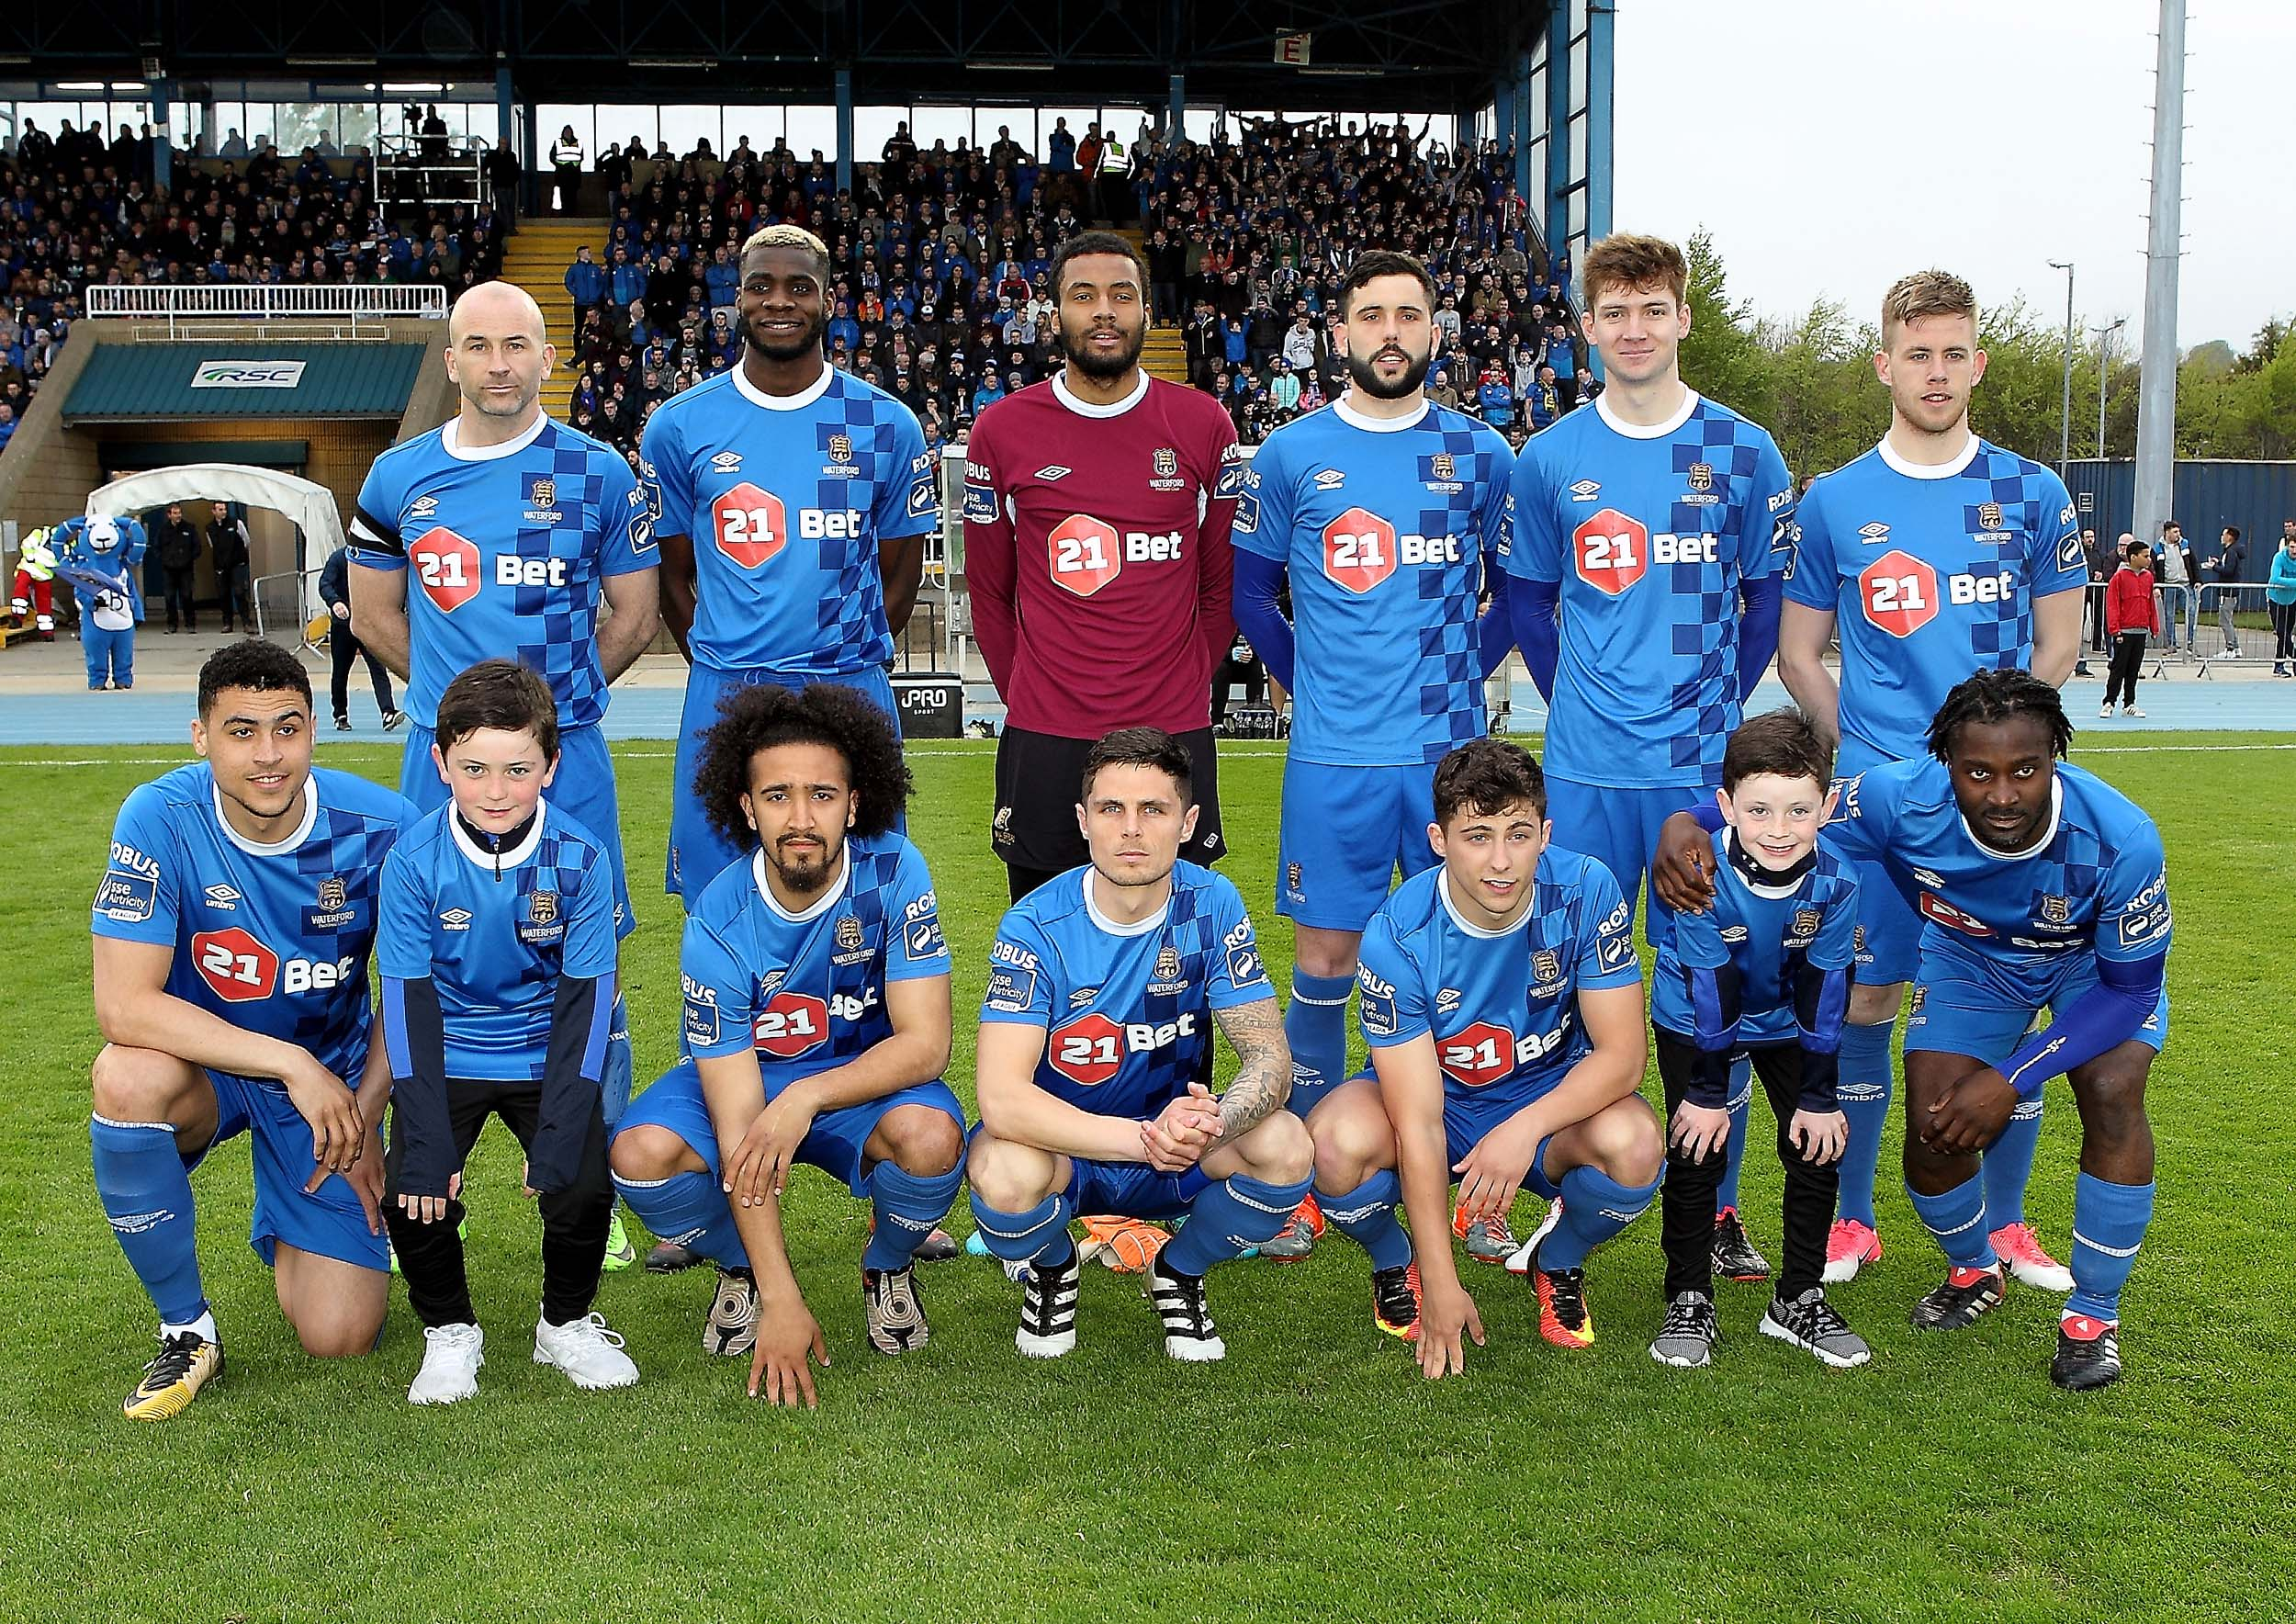 Waterford FC hoping to make it three straight league wins as the Blues face Shamrock Rovers this evening